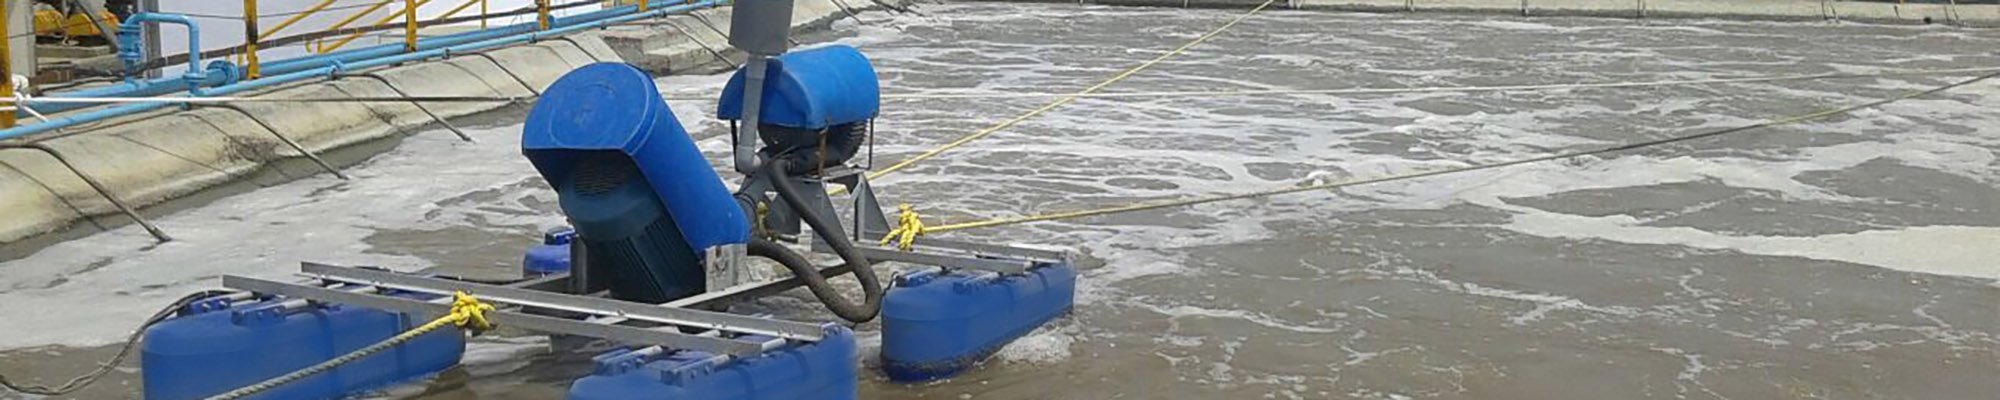 Industrial Wastewater Solutions